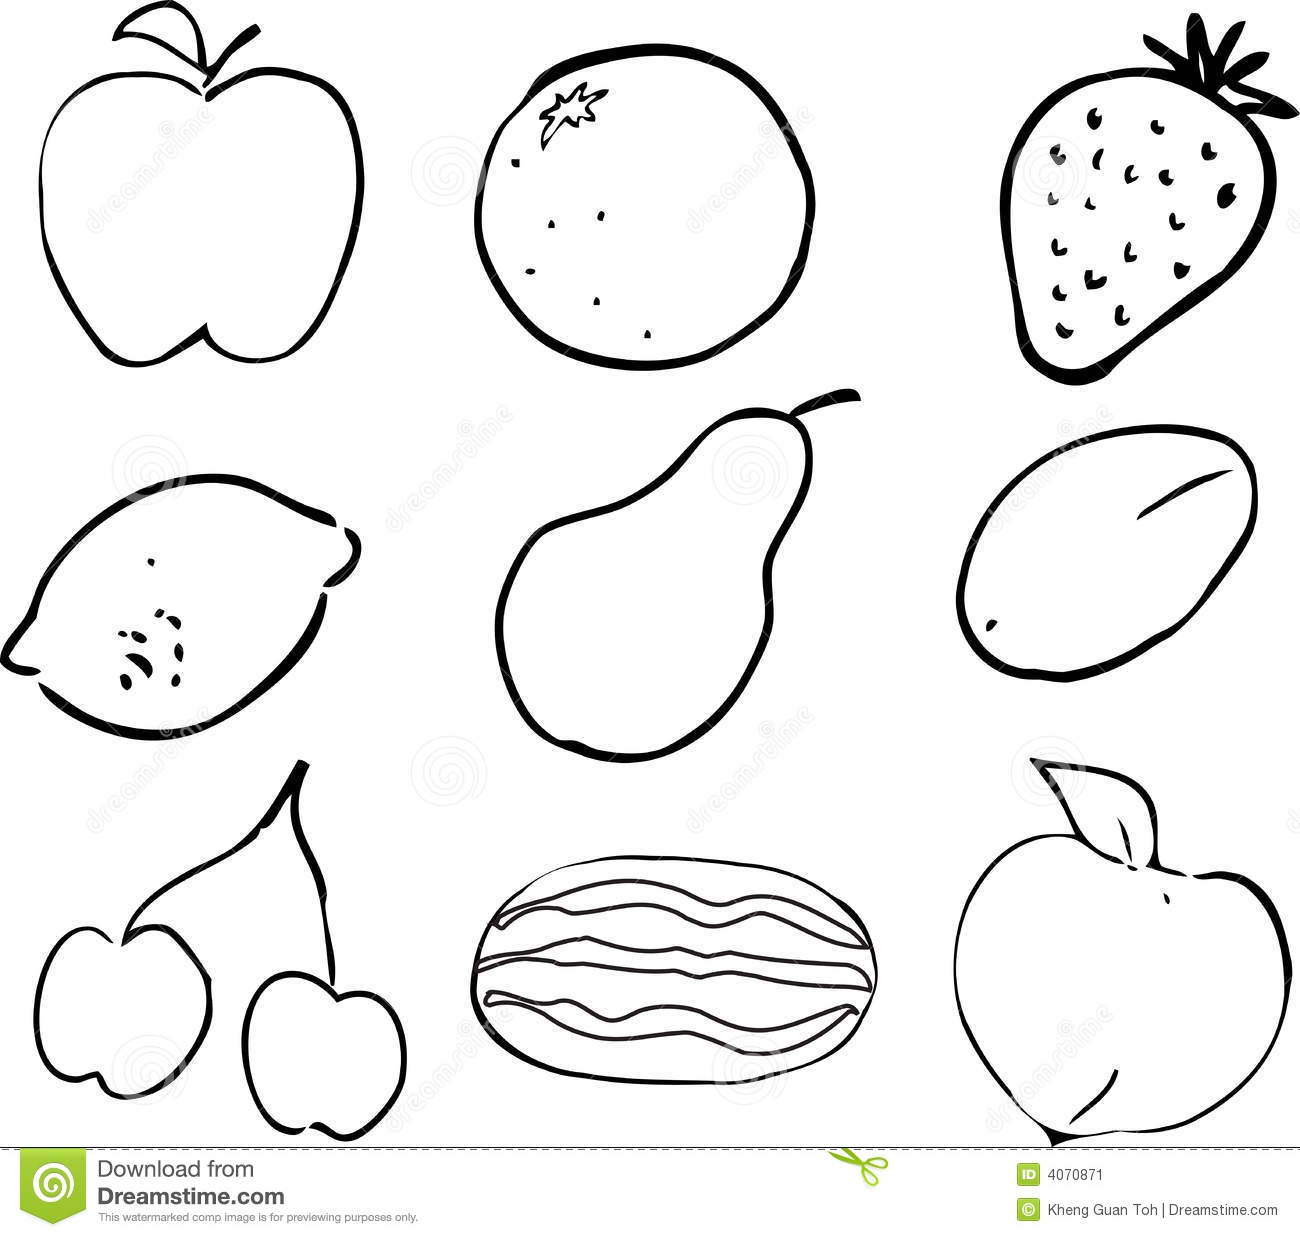 Apple Basket Clip Art in addition Empty bowls clip art in addition Cute Melting Snowman Clipart likewise Coloring Page Of A Oak Tree Clipart furthermore Calligraphy Thank You Ip2uELnIx8BMJYPVQd0OG1ITWfmGdDOTxqAj3iigbyQ. on apple clip art 9